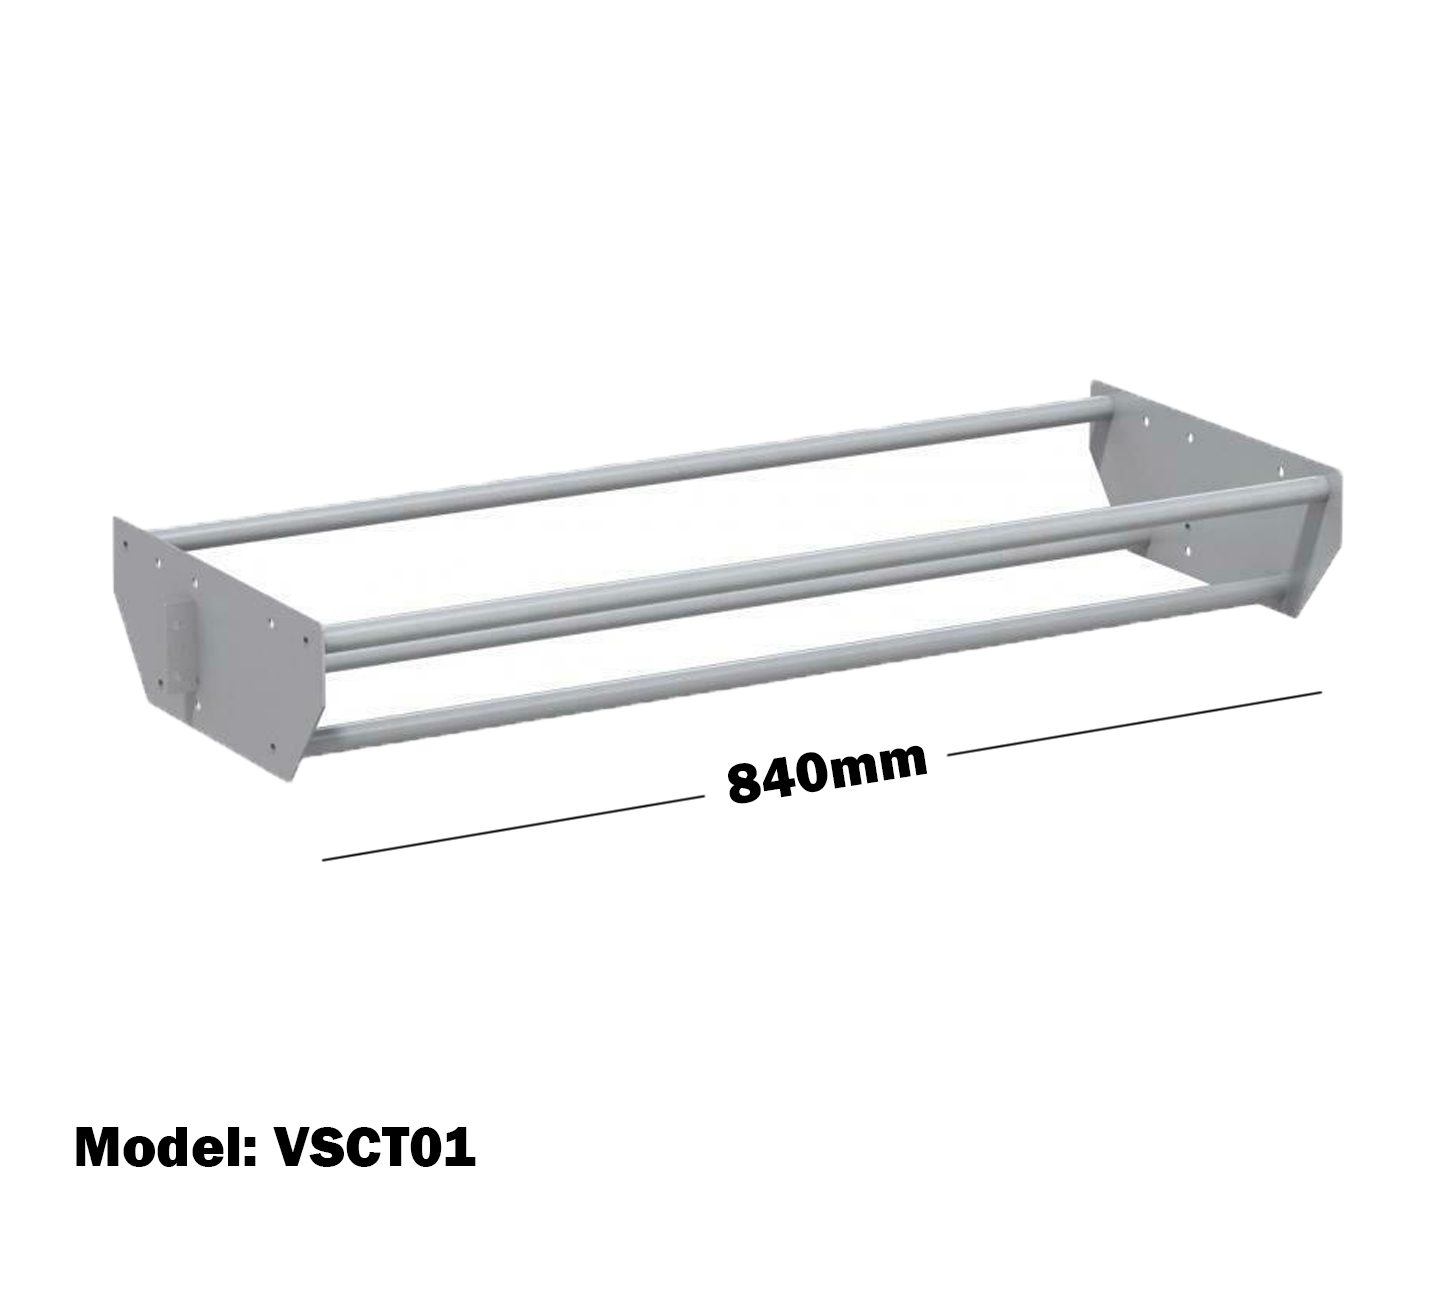 Van Shelving 840mm(L) Cable Tray For Van Shelving System VSCT01